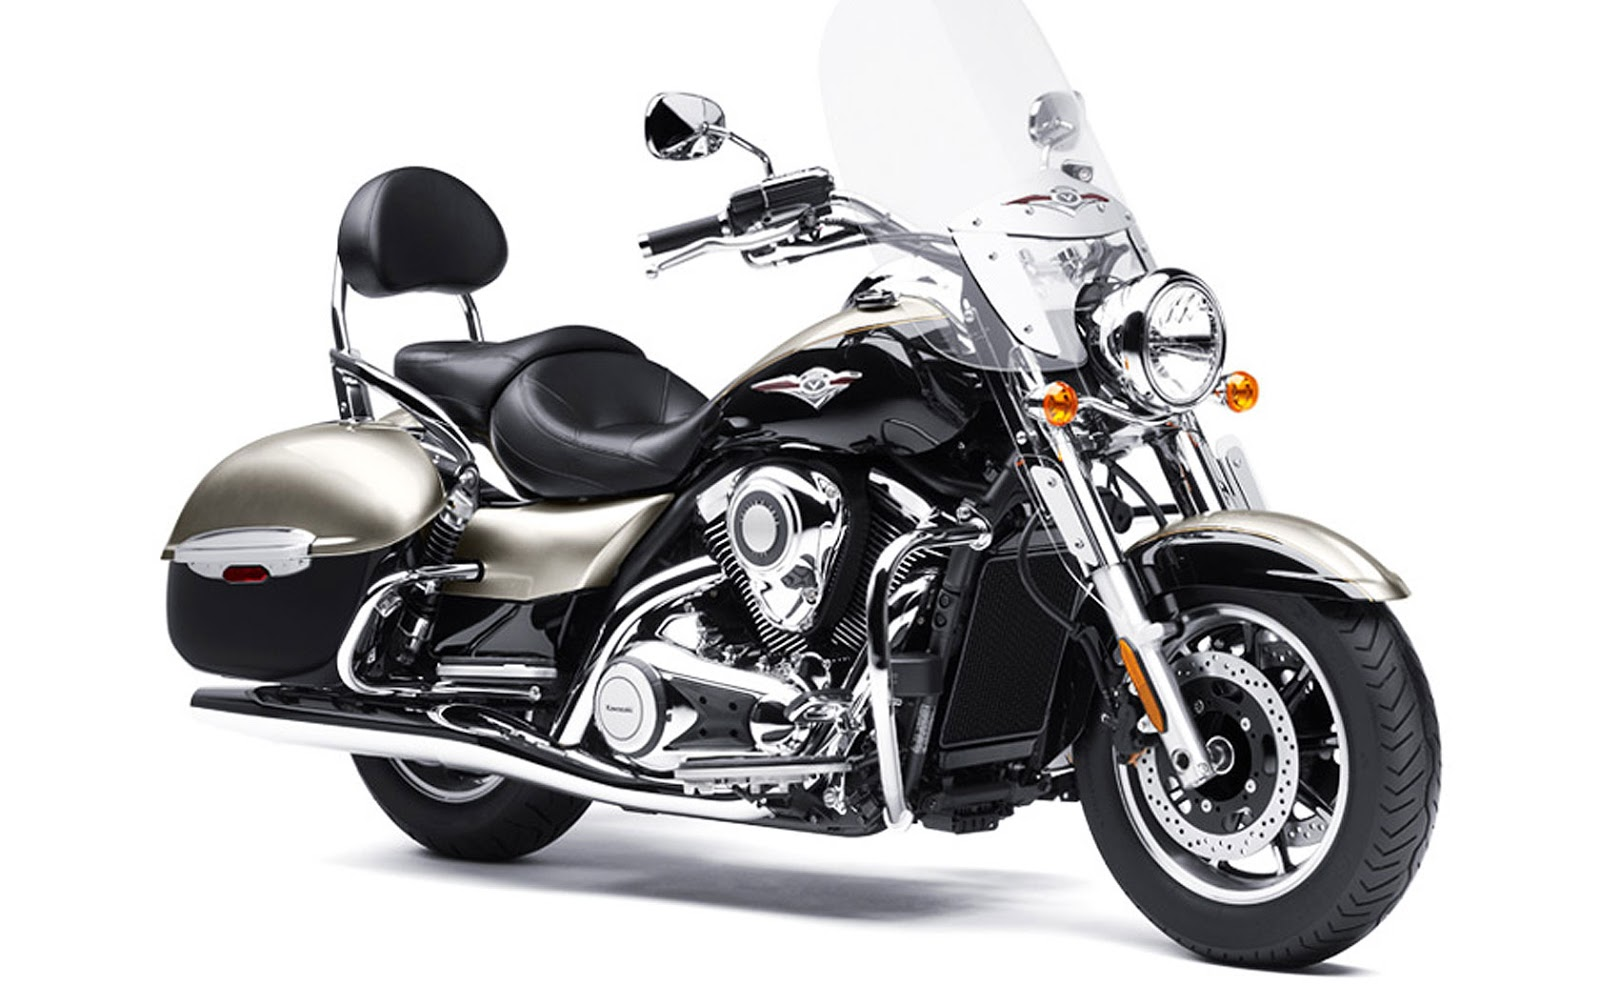 Kawasaki Vulcan Parts List